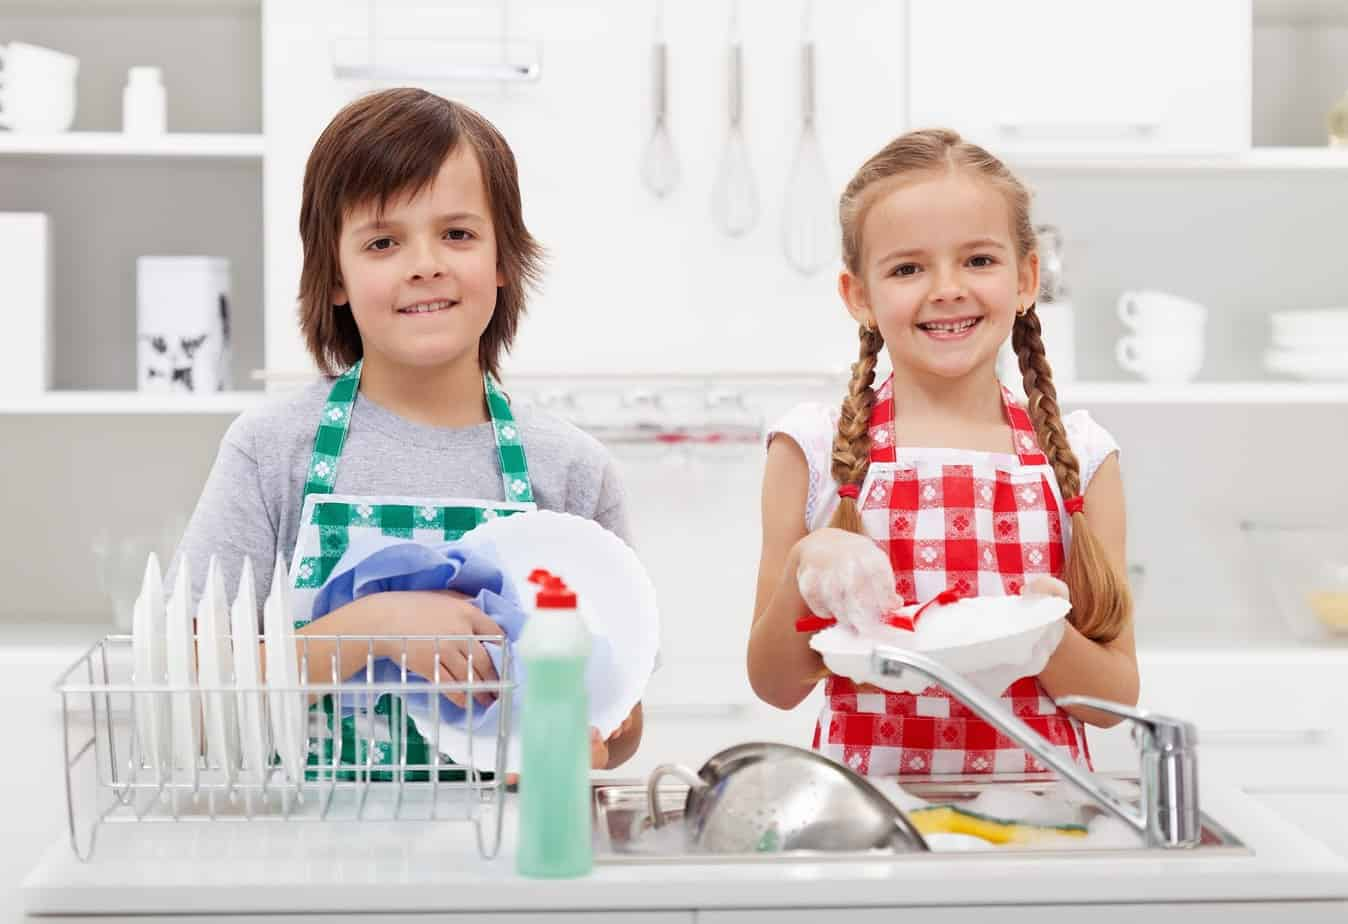 Purposeful Parenting - Children Working Together Washing Dishes - Cause and Effect